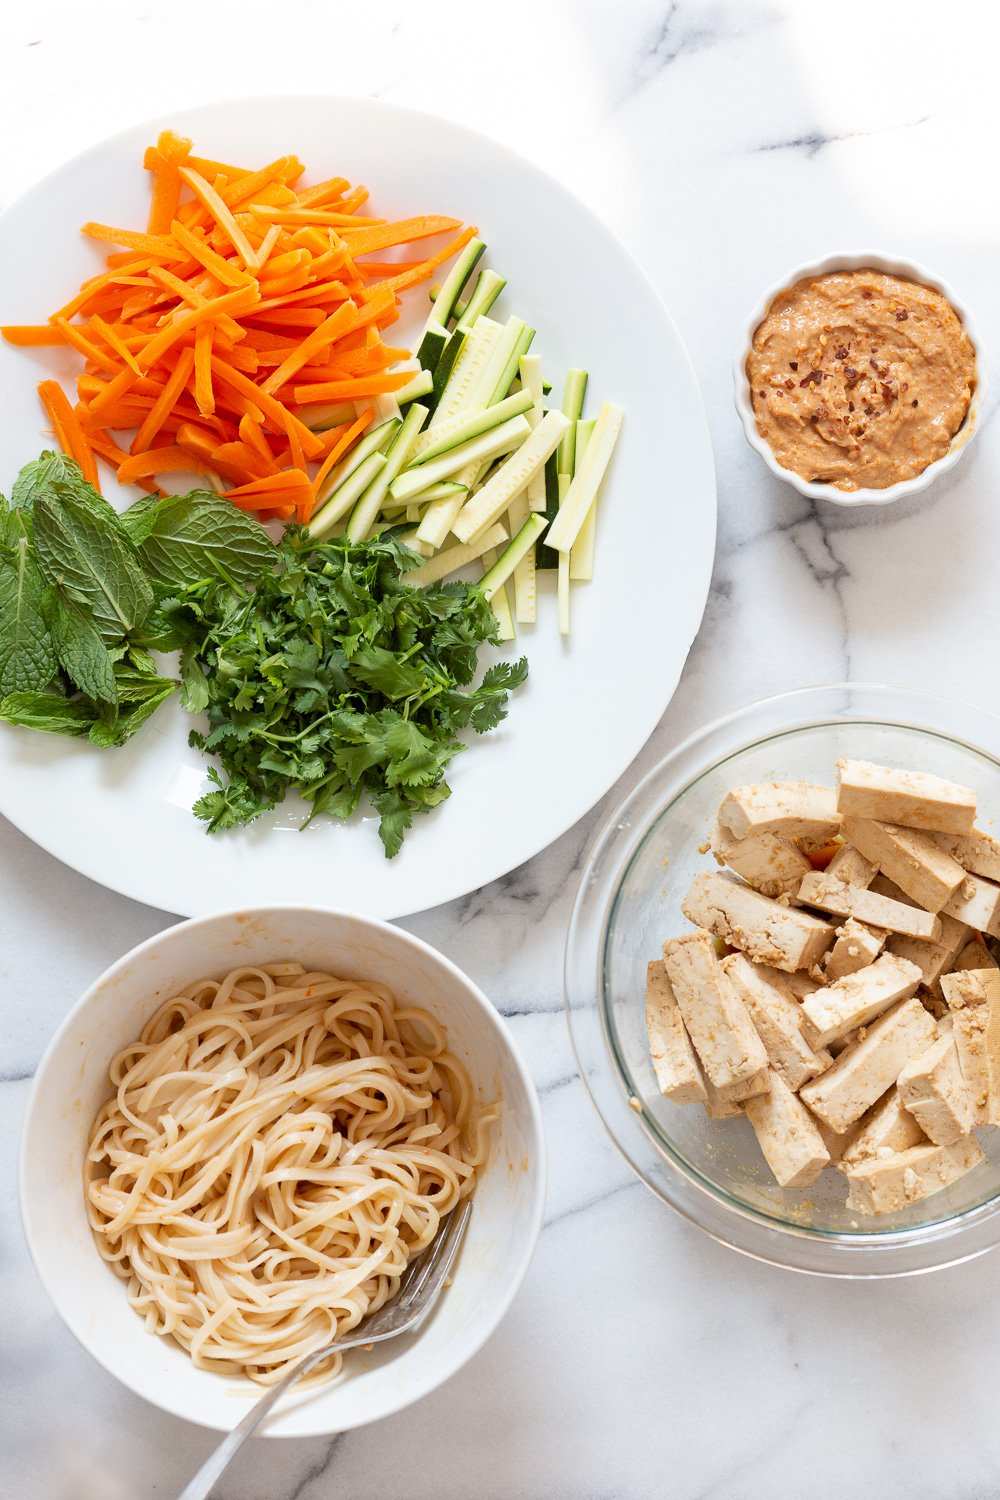 Ingredients for our vegan Fresh Spring rolls in white bowls and plates